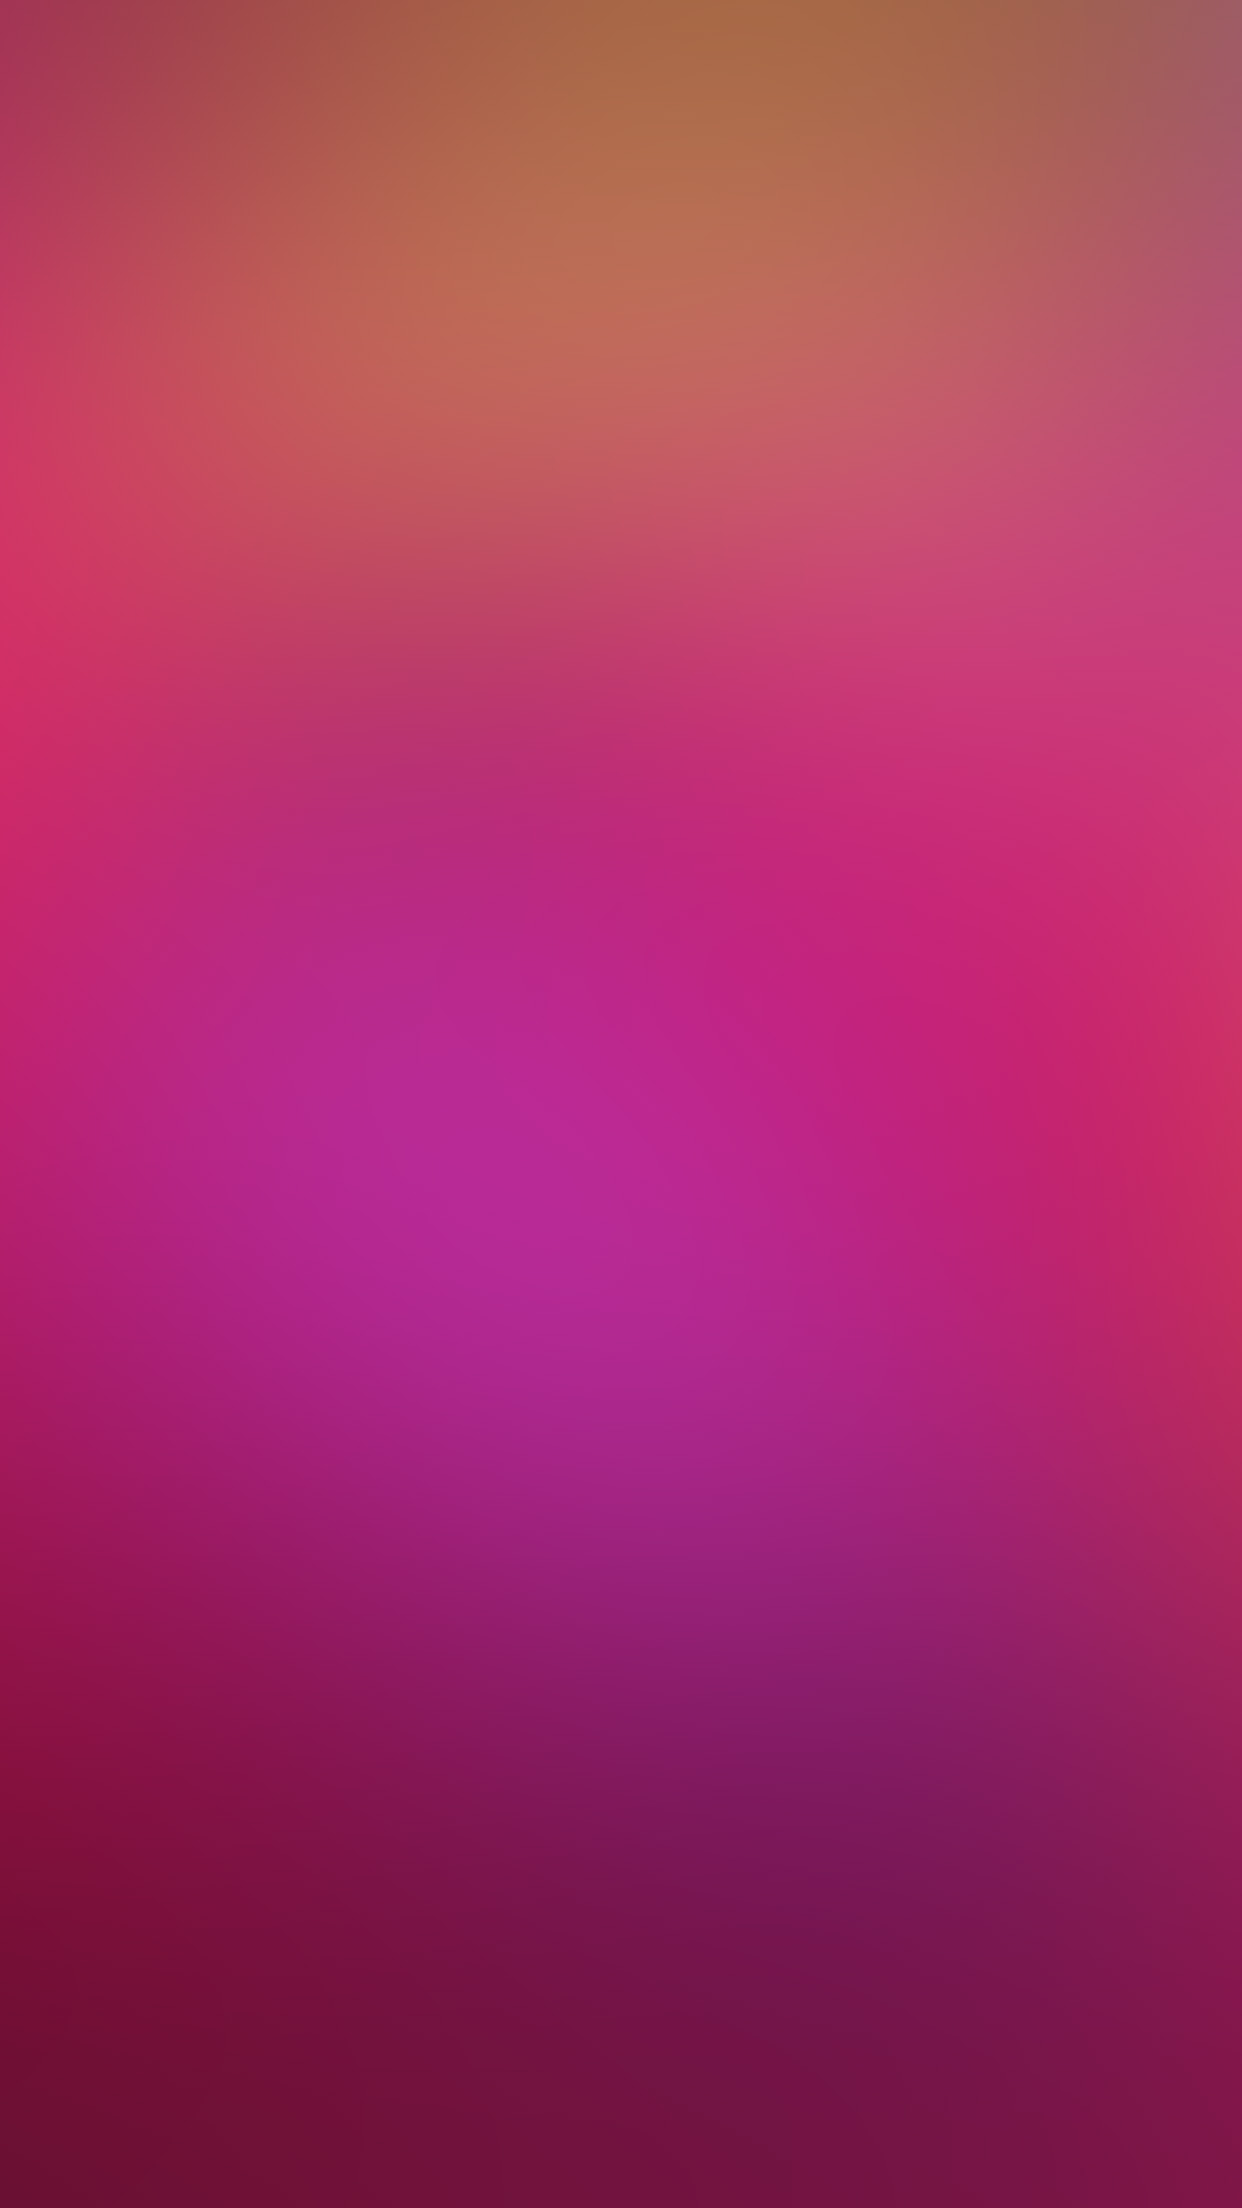 Simple Cute Iphone Wallpapers Sh12 Hot Pink Red Gradation Blur Papers Co